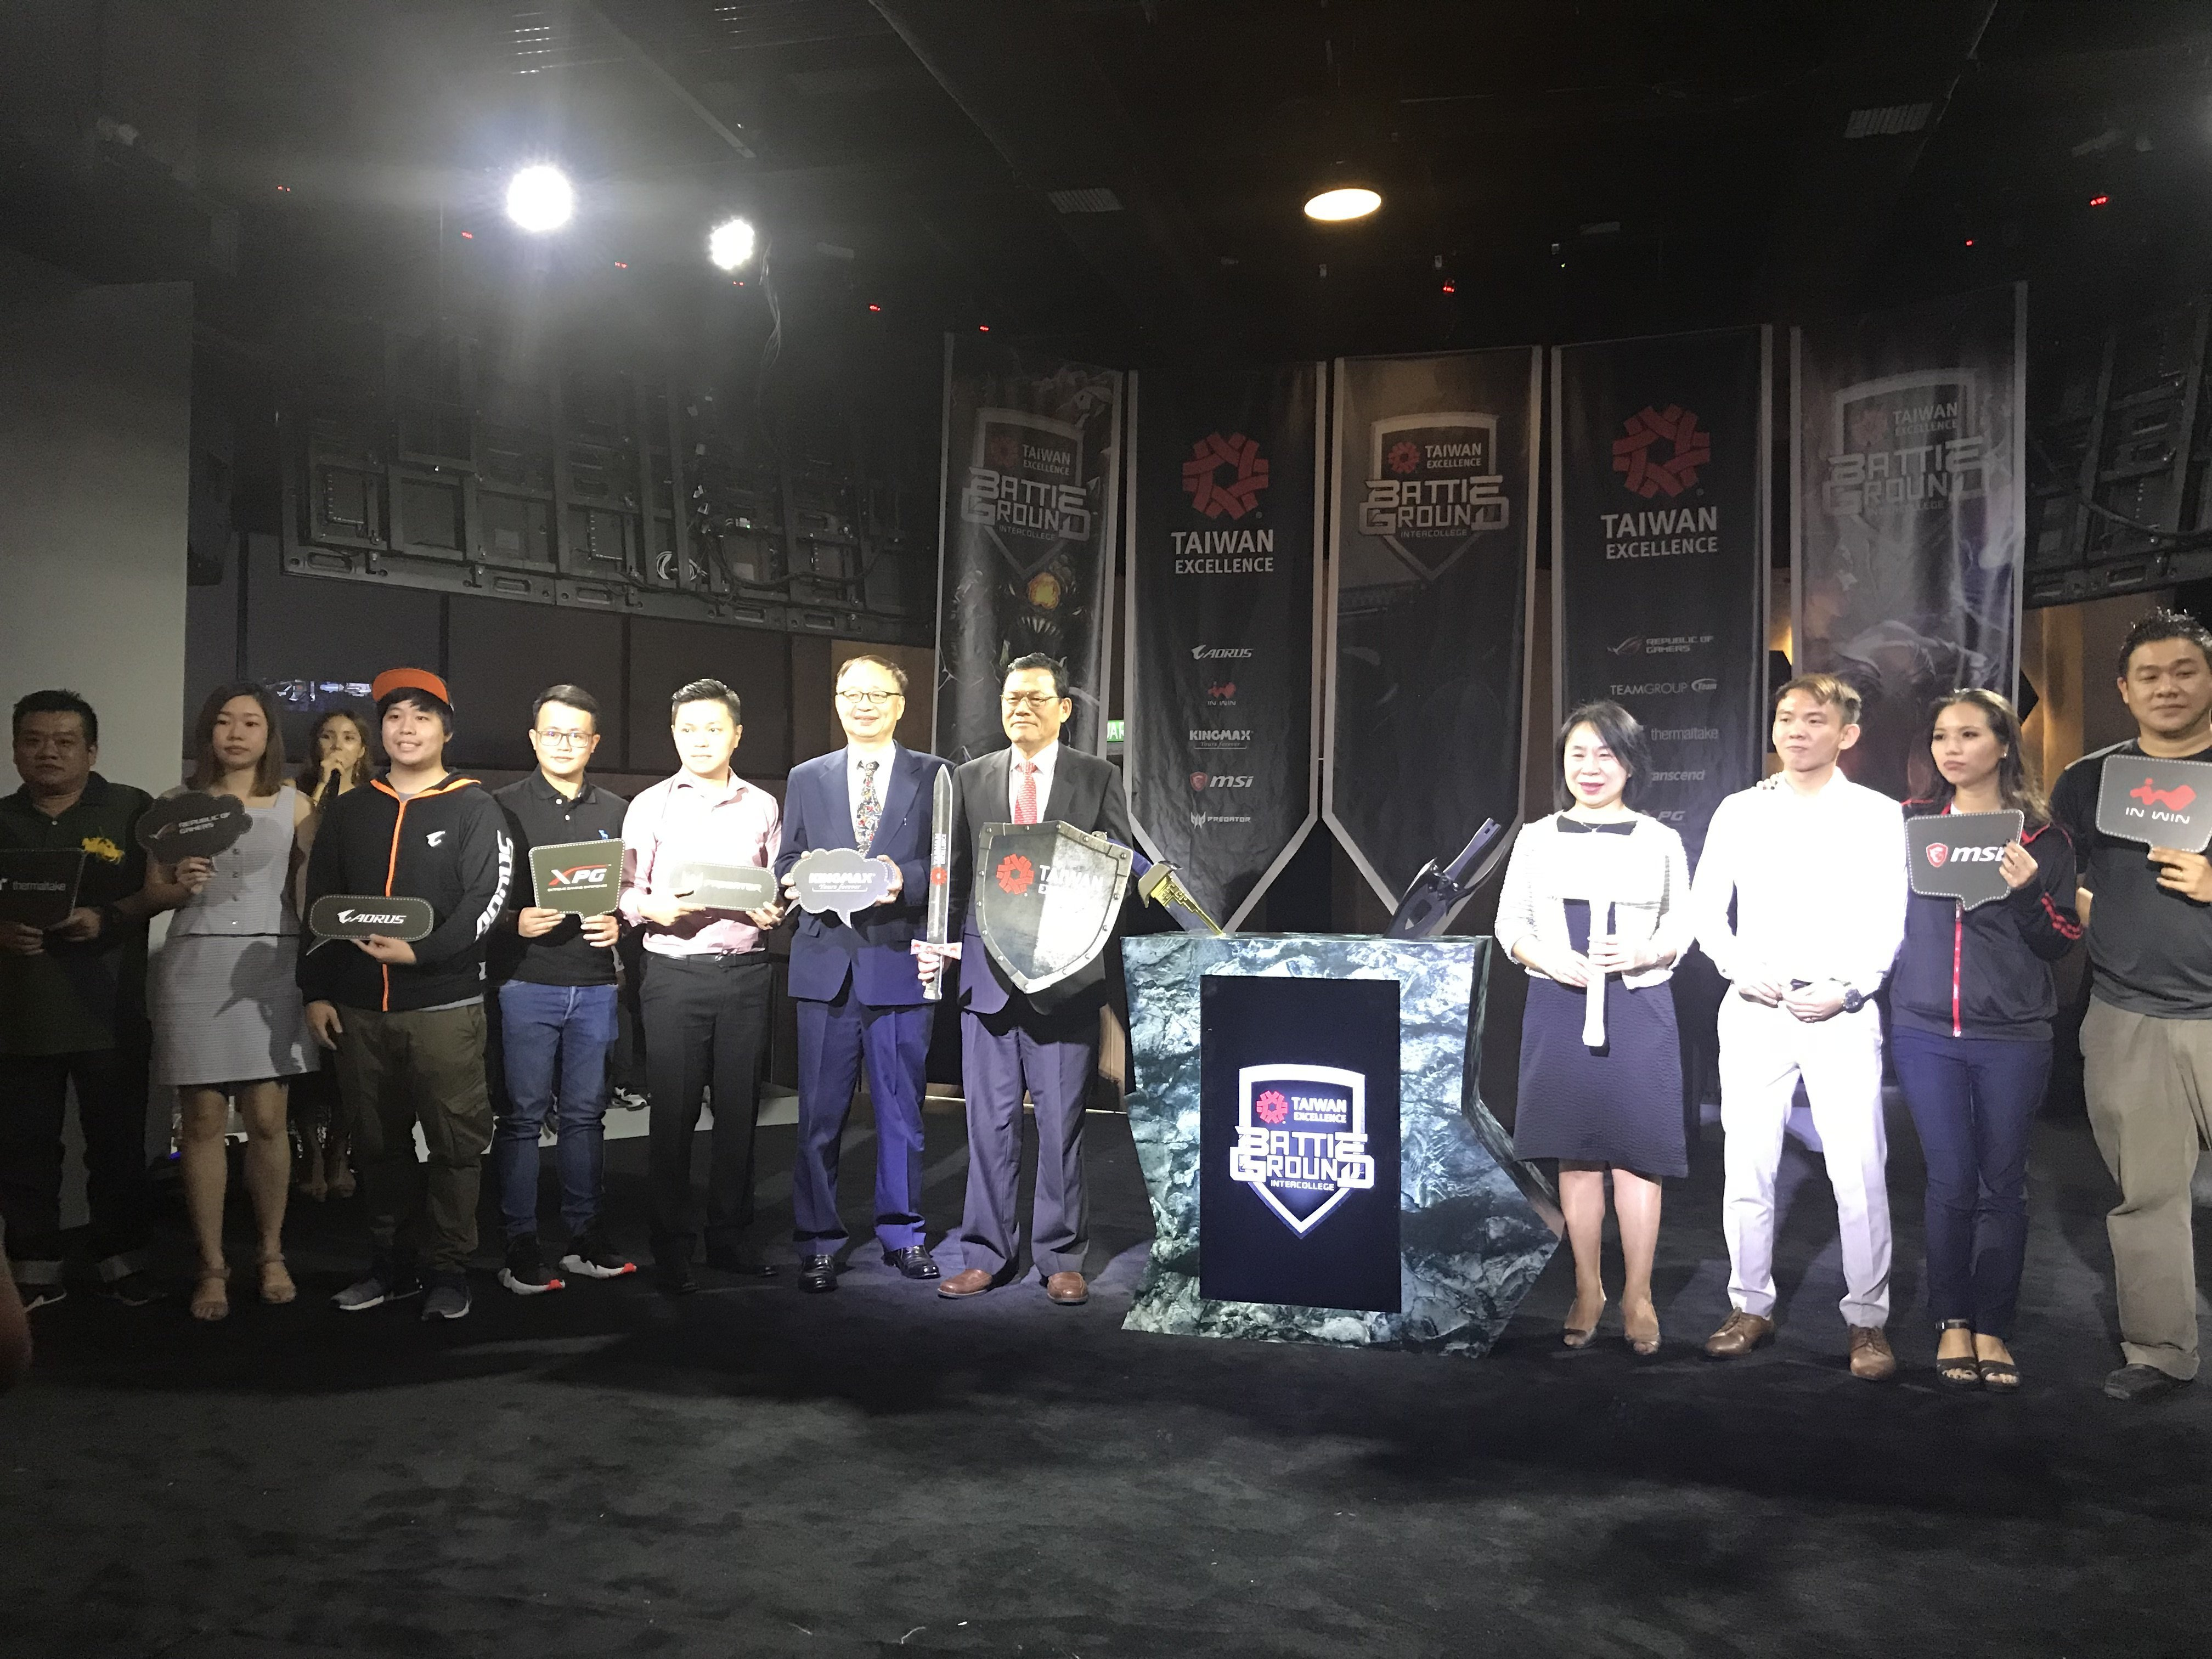 Taiwan Excellence Intercollege Battleground 2018 Begins in Malaysia ...